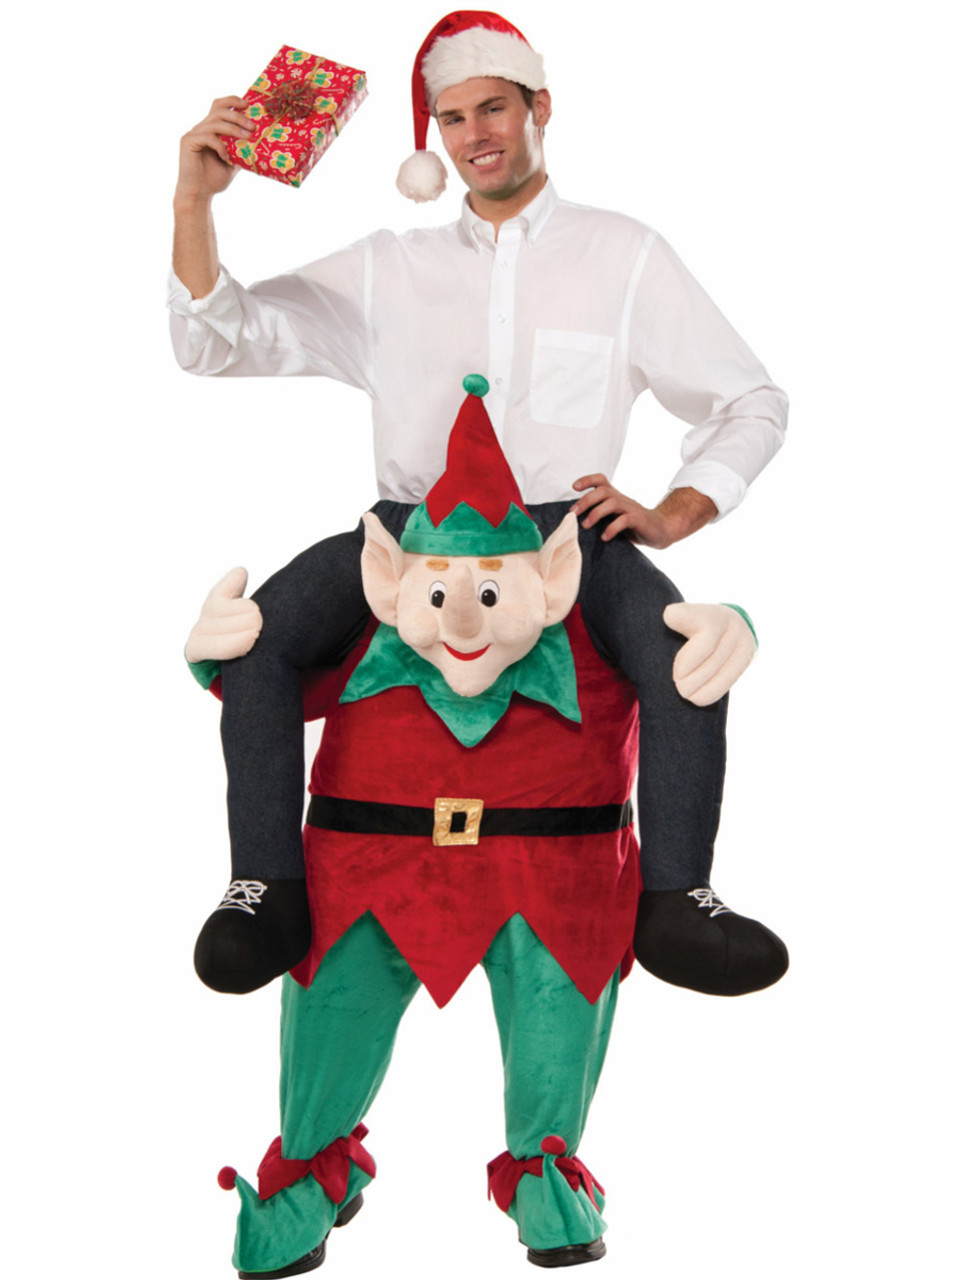 Christmas Elf Costume.Myself On An Elf Mascot Christmas Costume